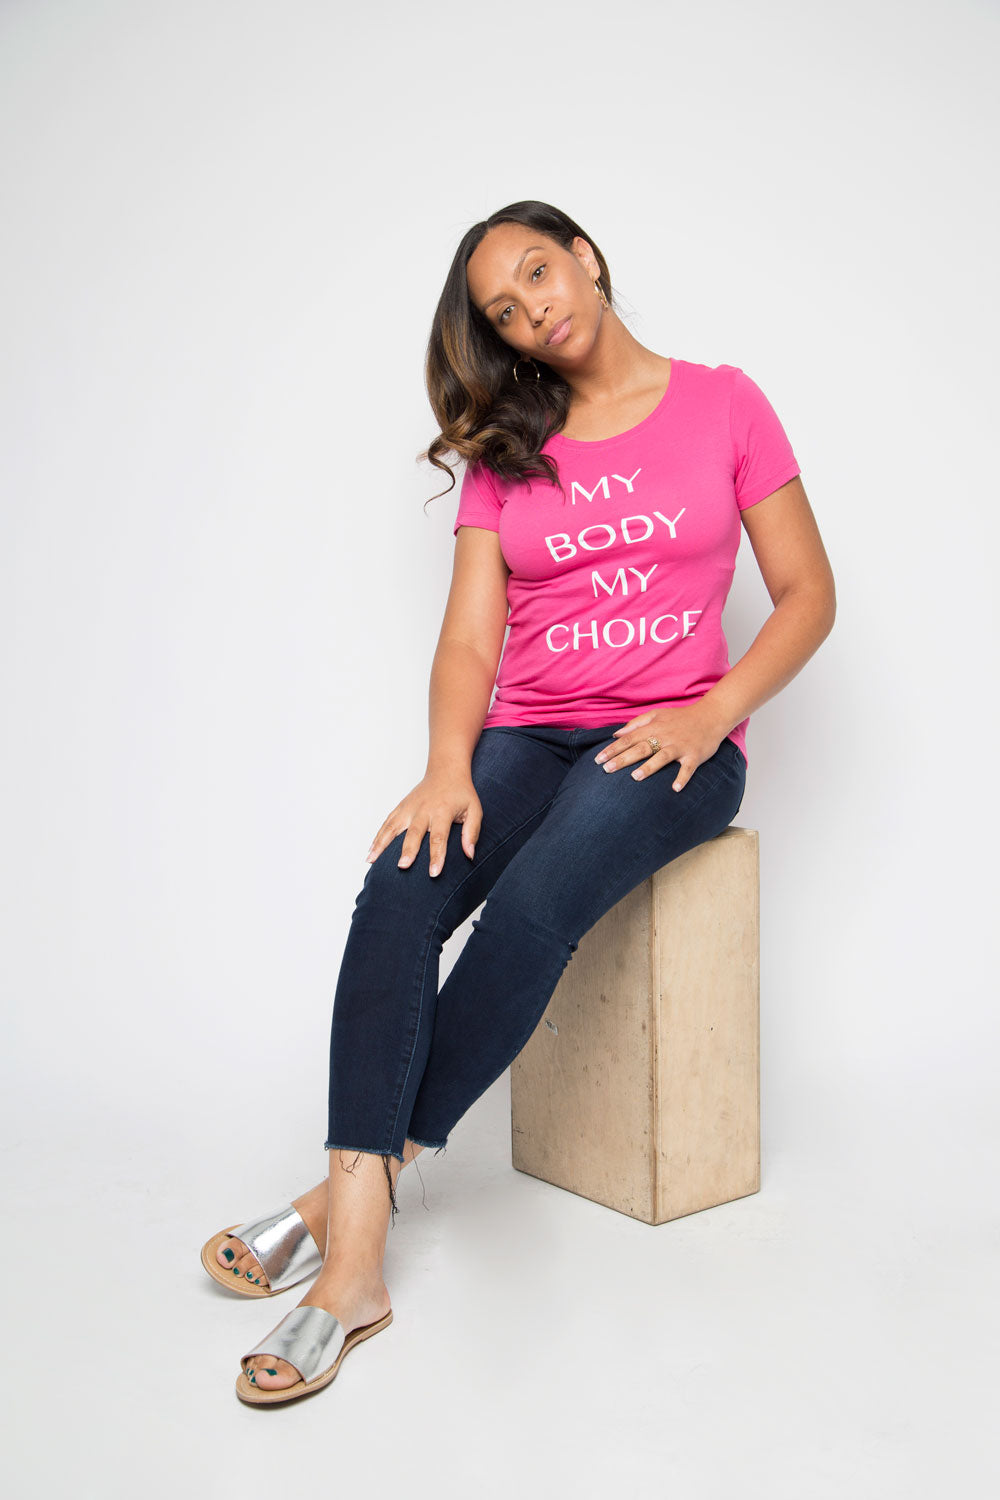 My Body My Choice Shirt in Pink - Trunk Series, LLC